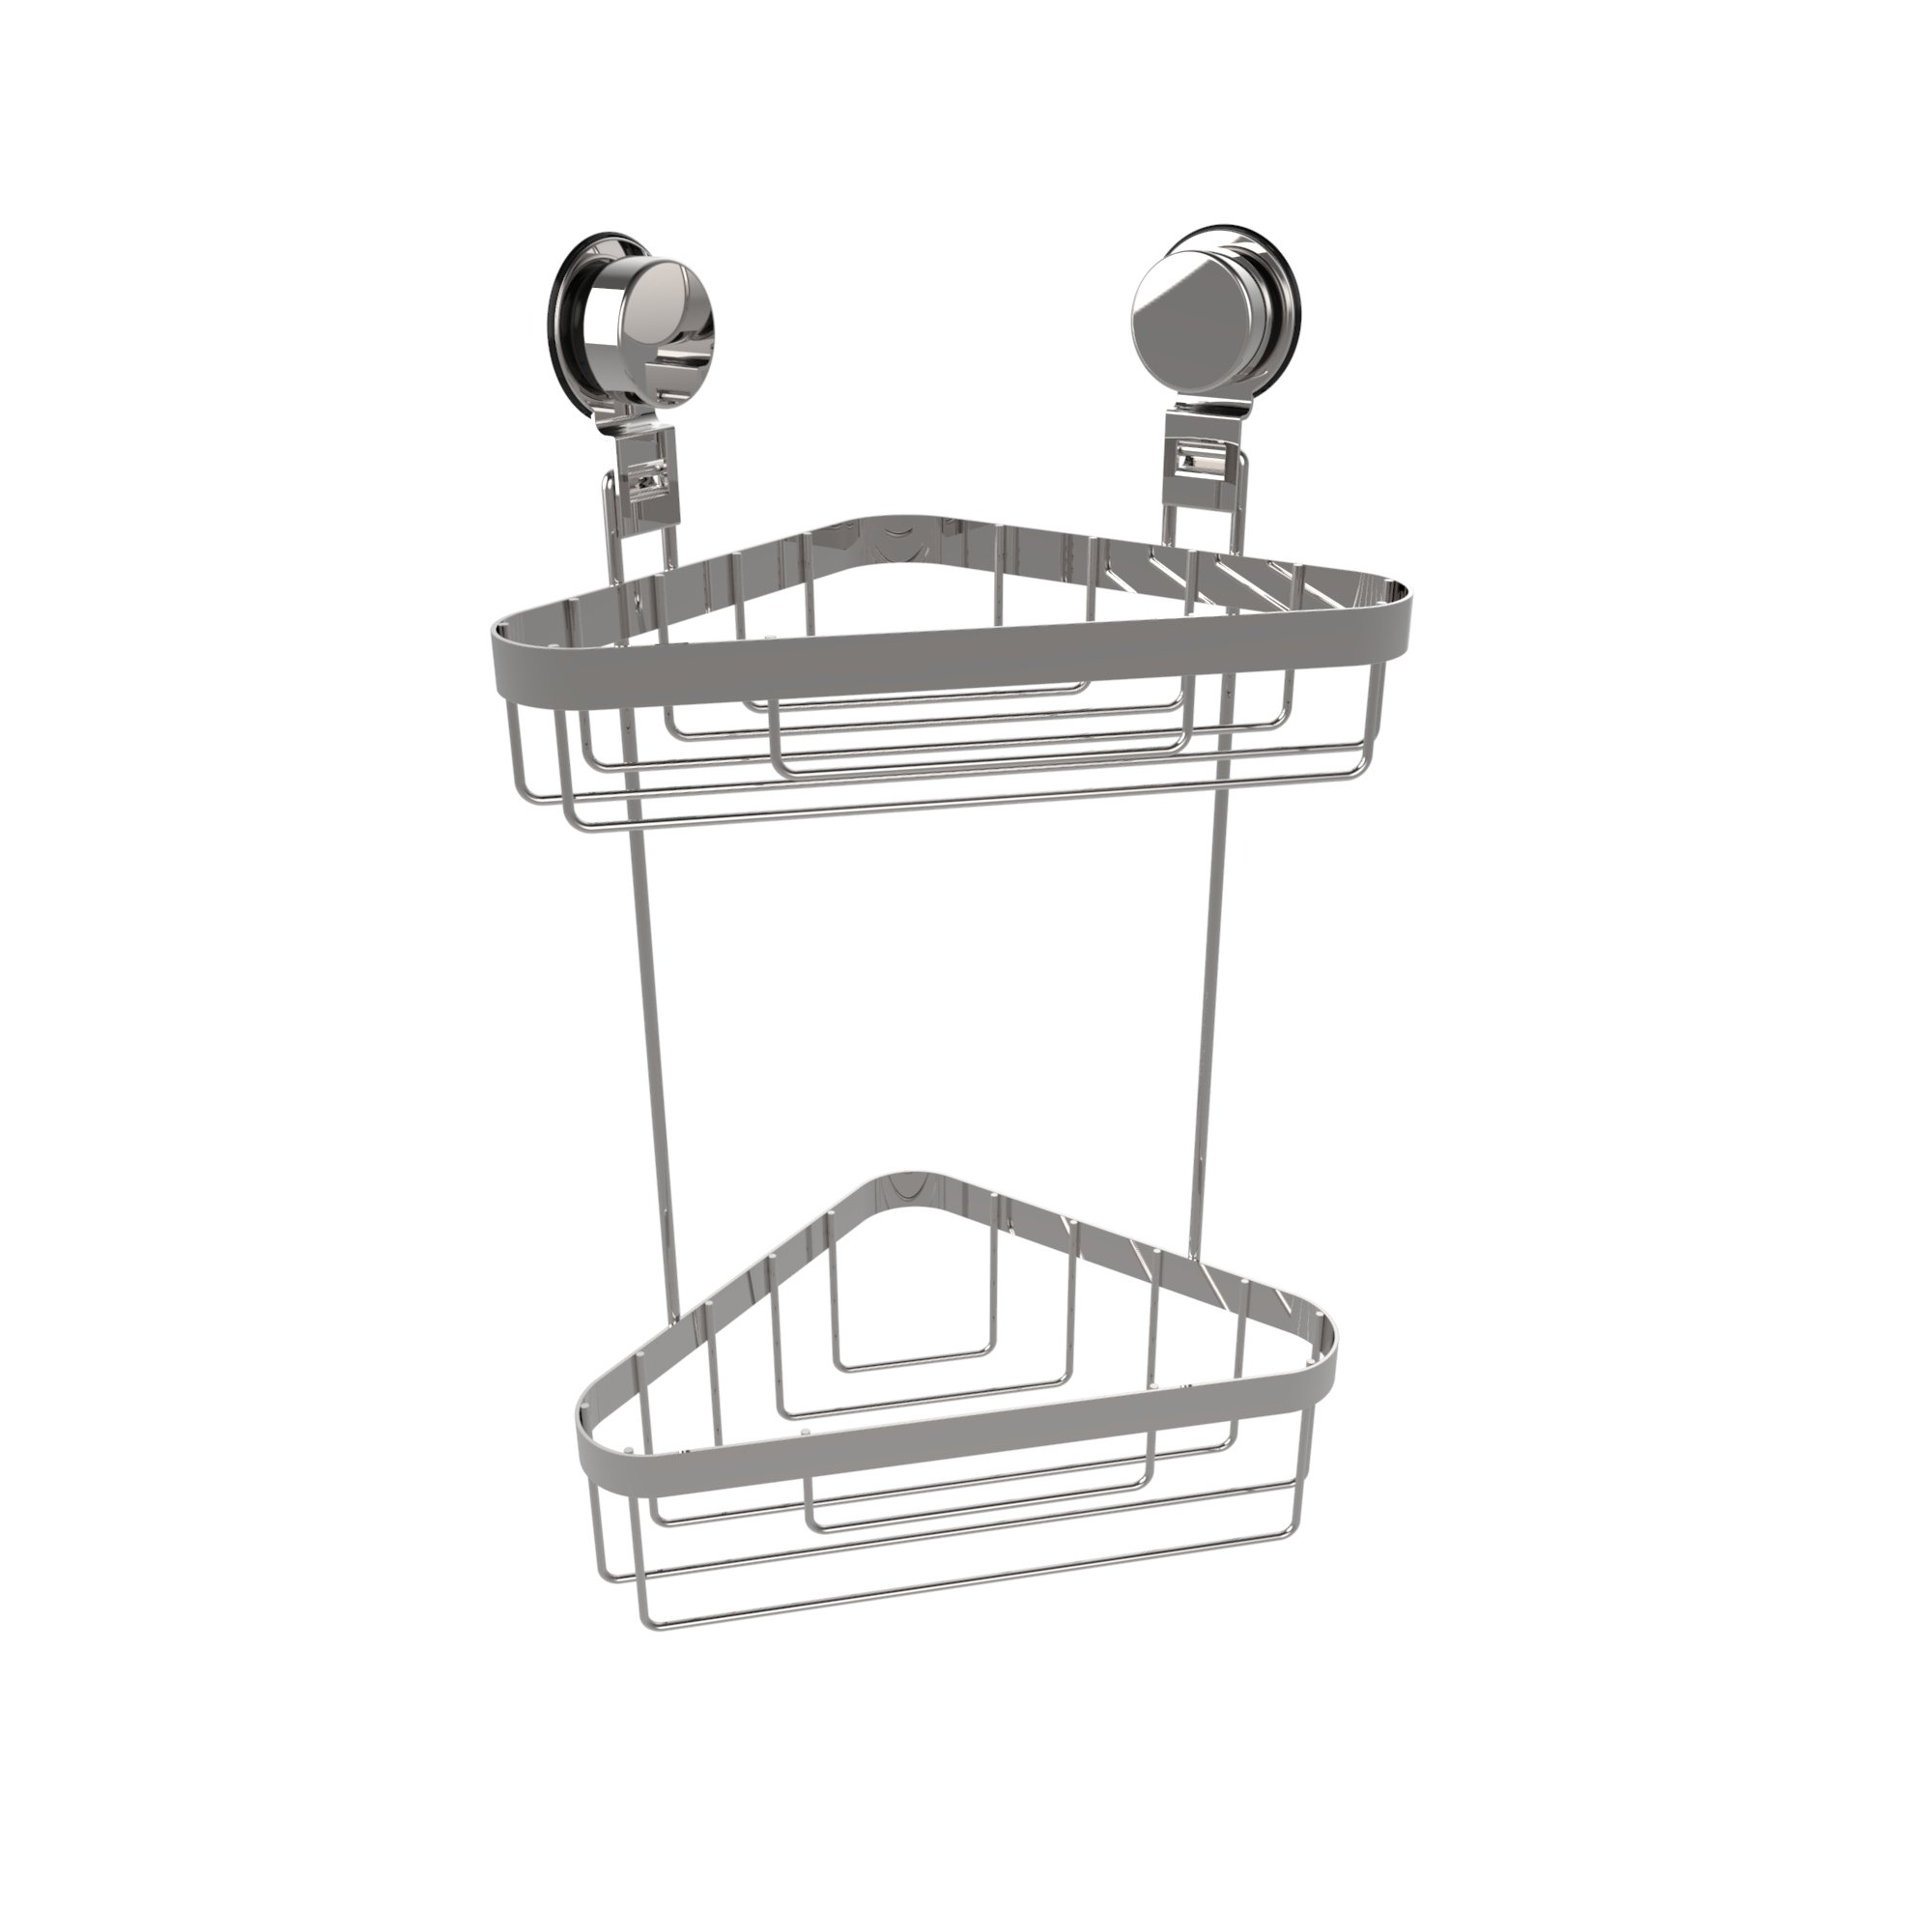 Lavish Home Wall Mounted Two Tier Corner Caddy-Shower Storage Rack for Bathroom Organizing with Stainless Steel Twist Lock Suction Cups